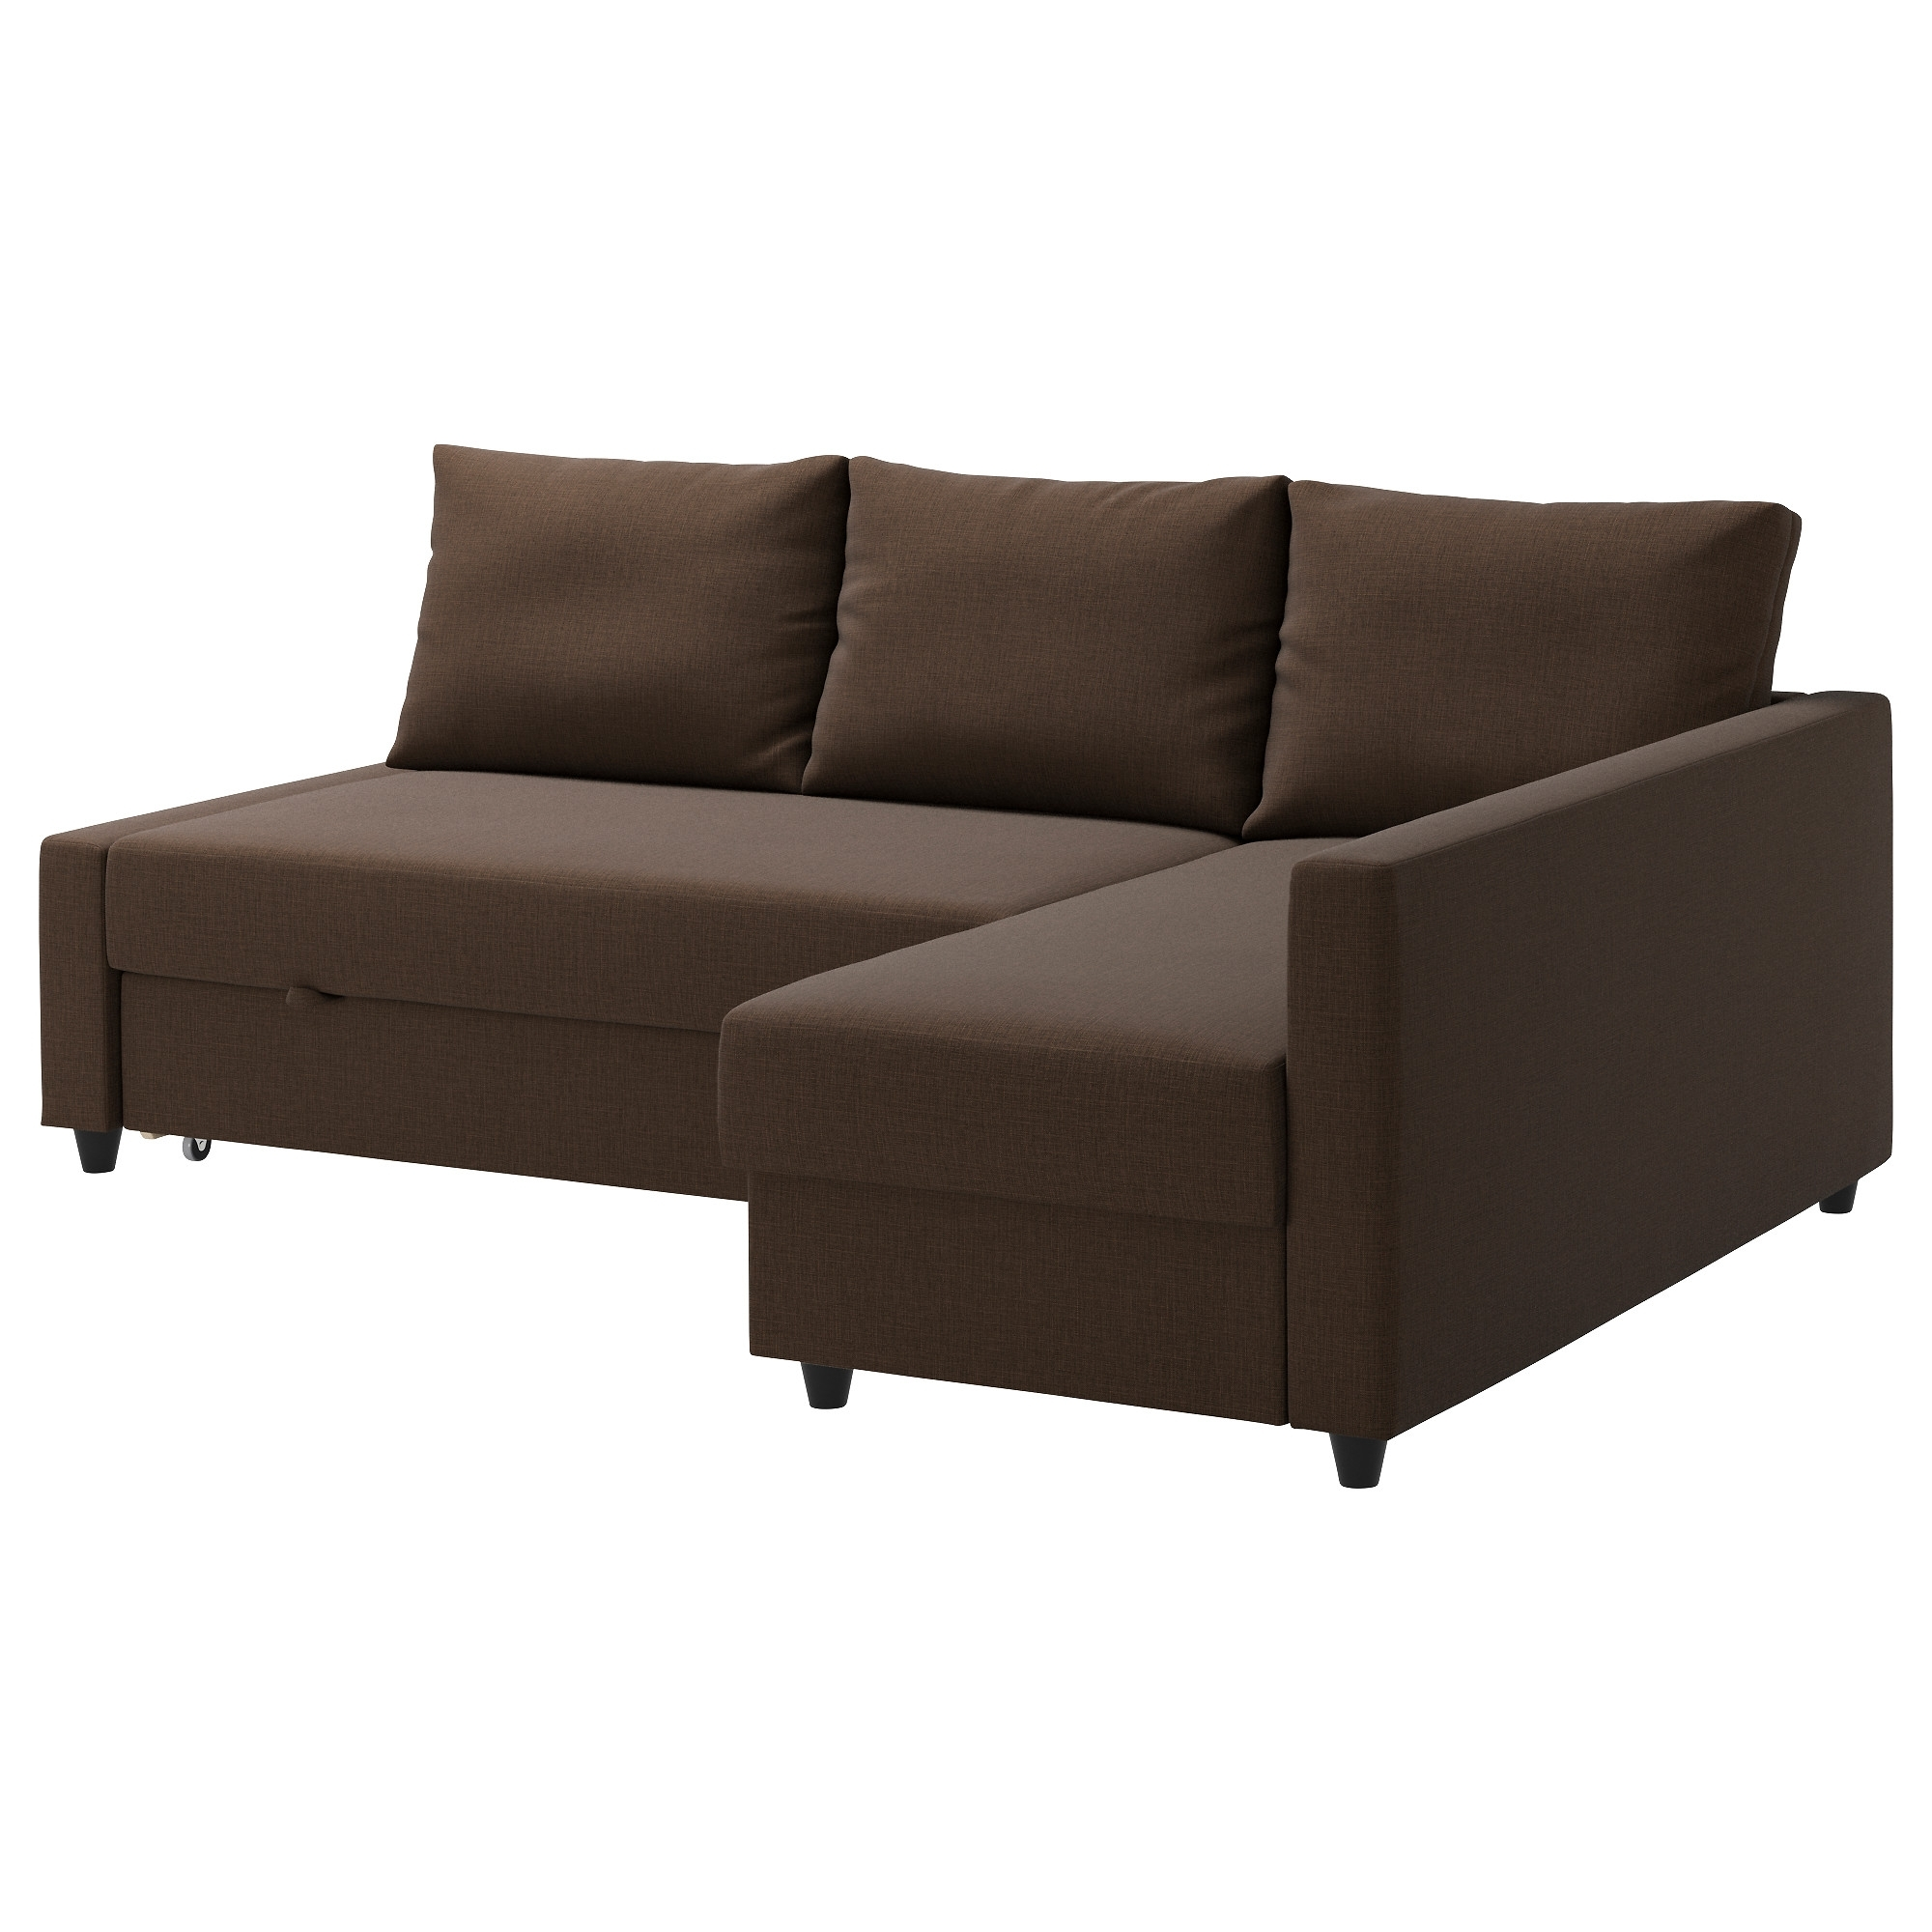 Friheten Corner Sofa Bed With Storage Skiftebo Brown – Ikea With Regard To Ikea Corner Sofas With Storage (View 6 of 10)